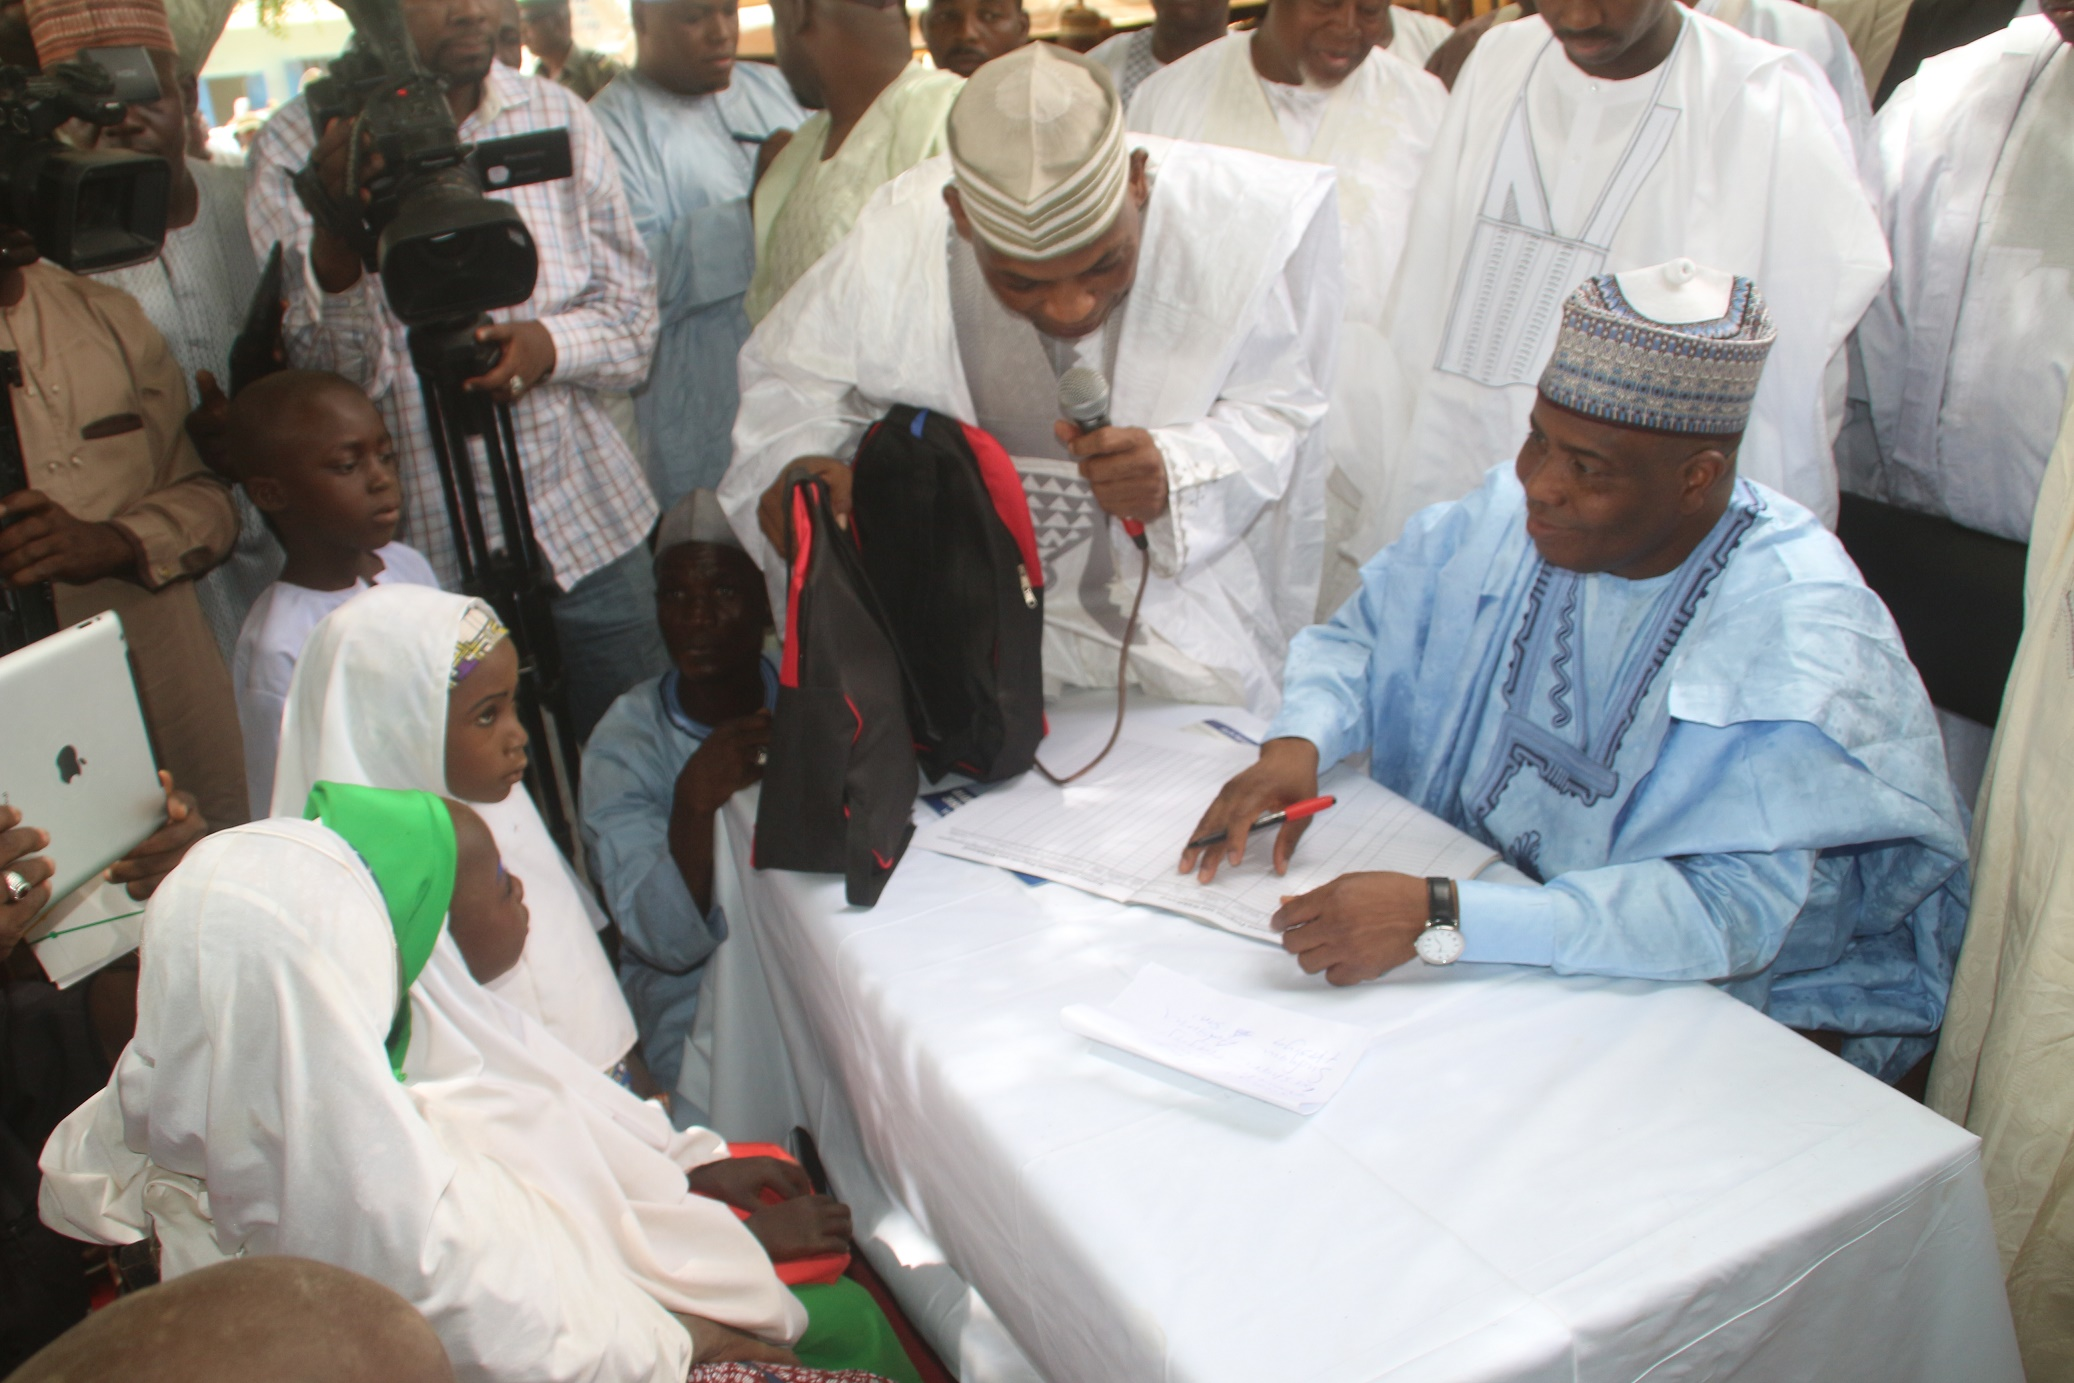 Enrollment 3: Governor Aminu Waziri Tambuwal enrolling new intakes into primary school at the flag-off of Sokoto state school enrollment drive in Riji, Rabah LGA.